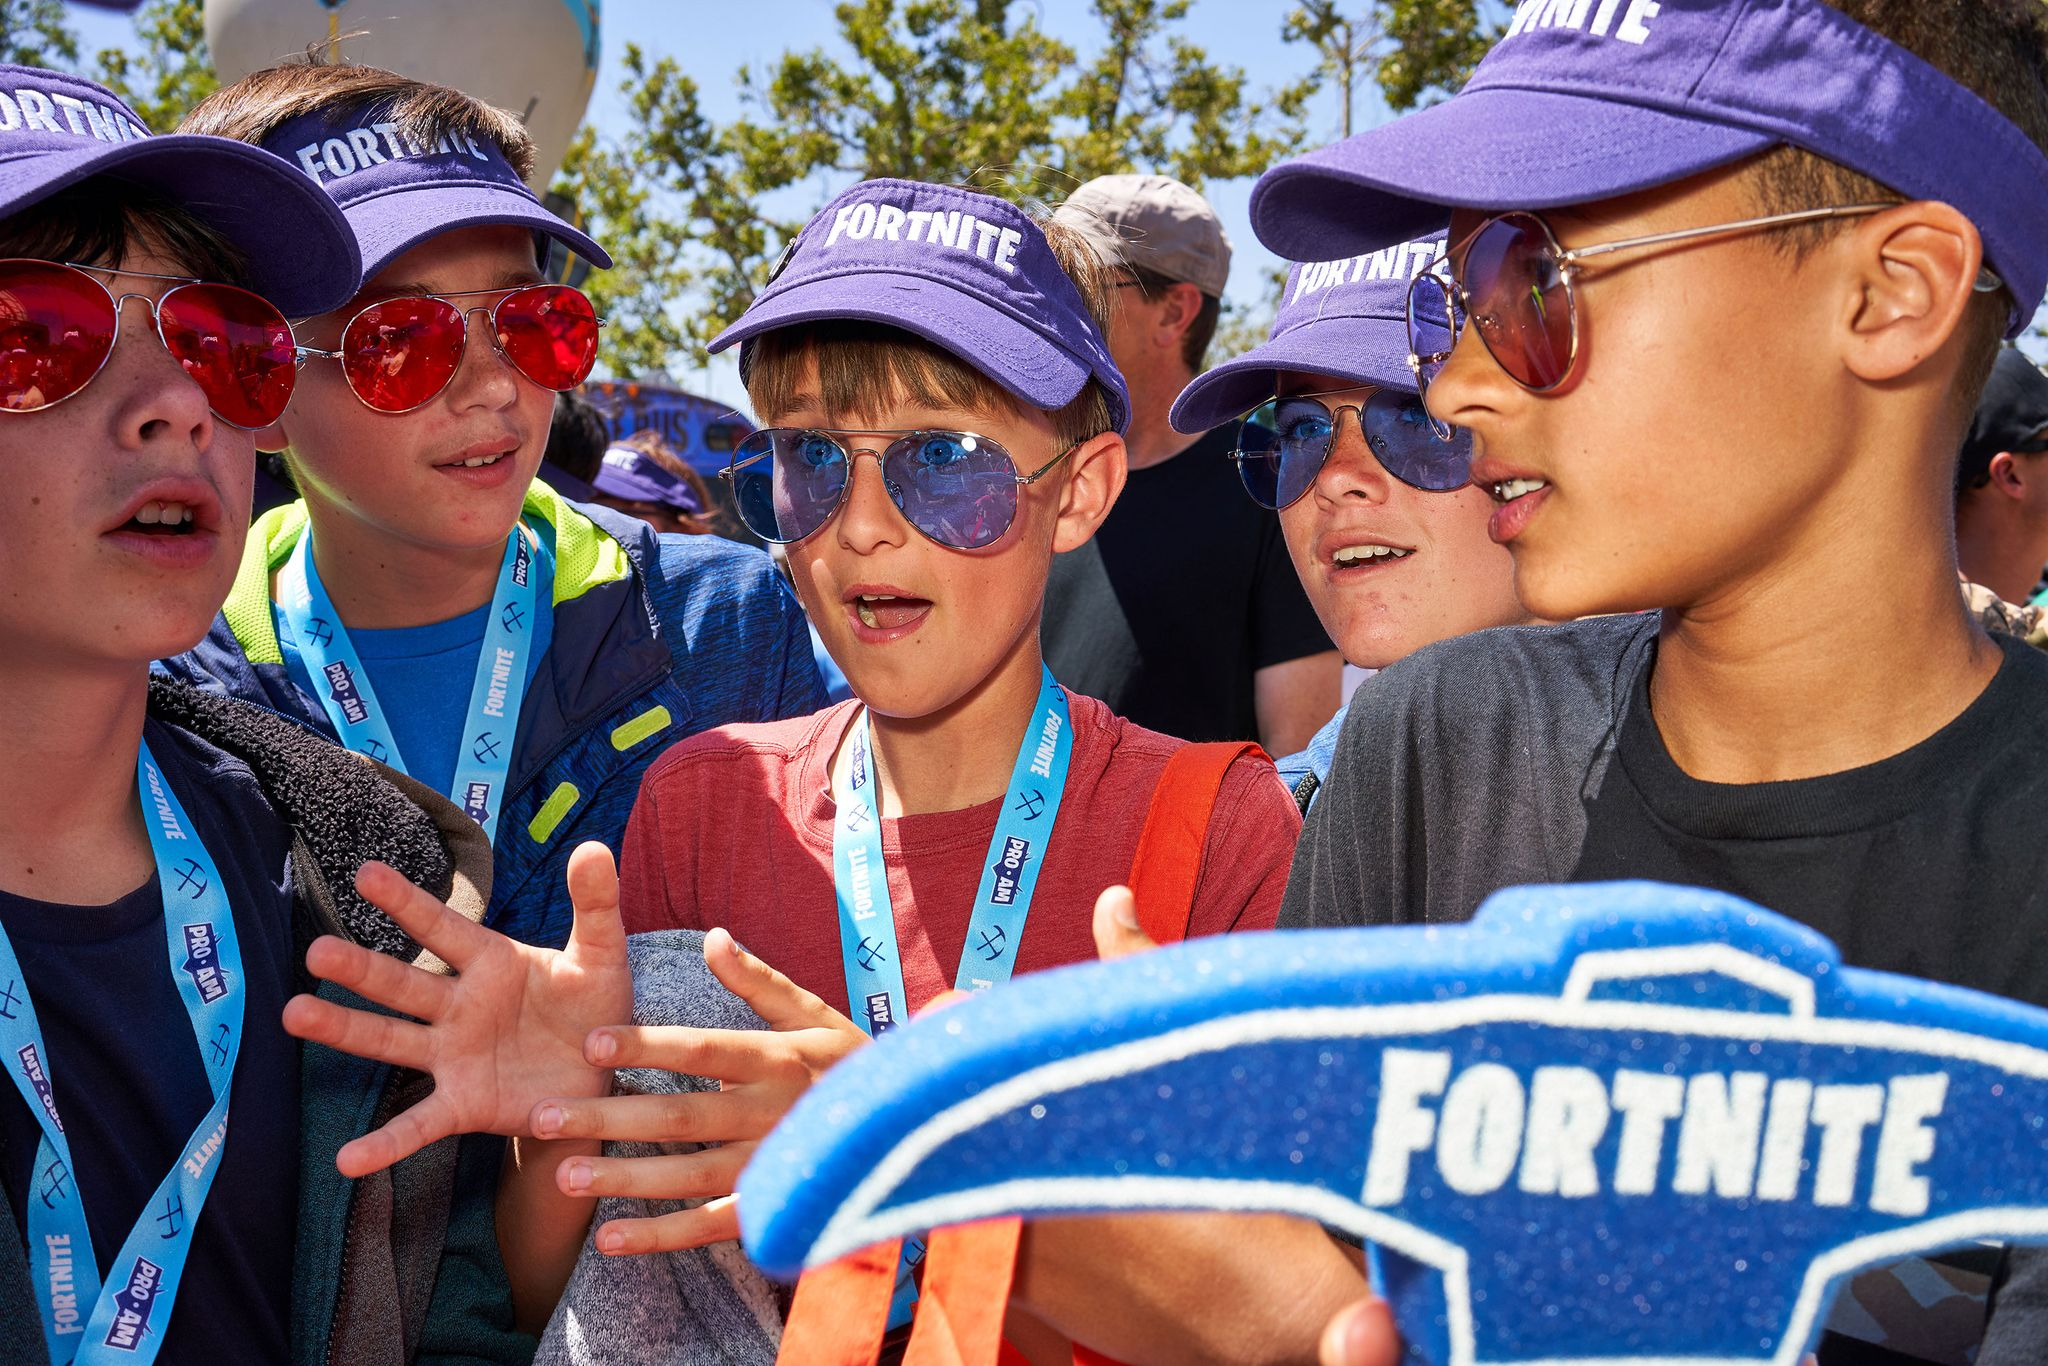 How 'Fortnite' Became the Most Popular Video Game on Earth